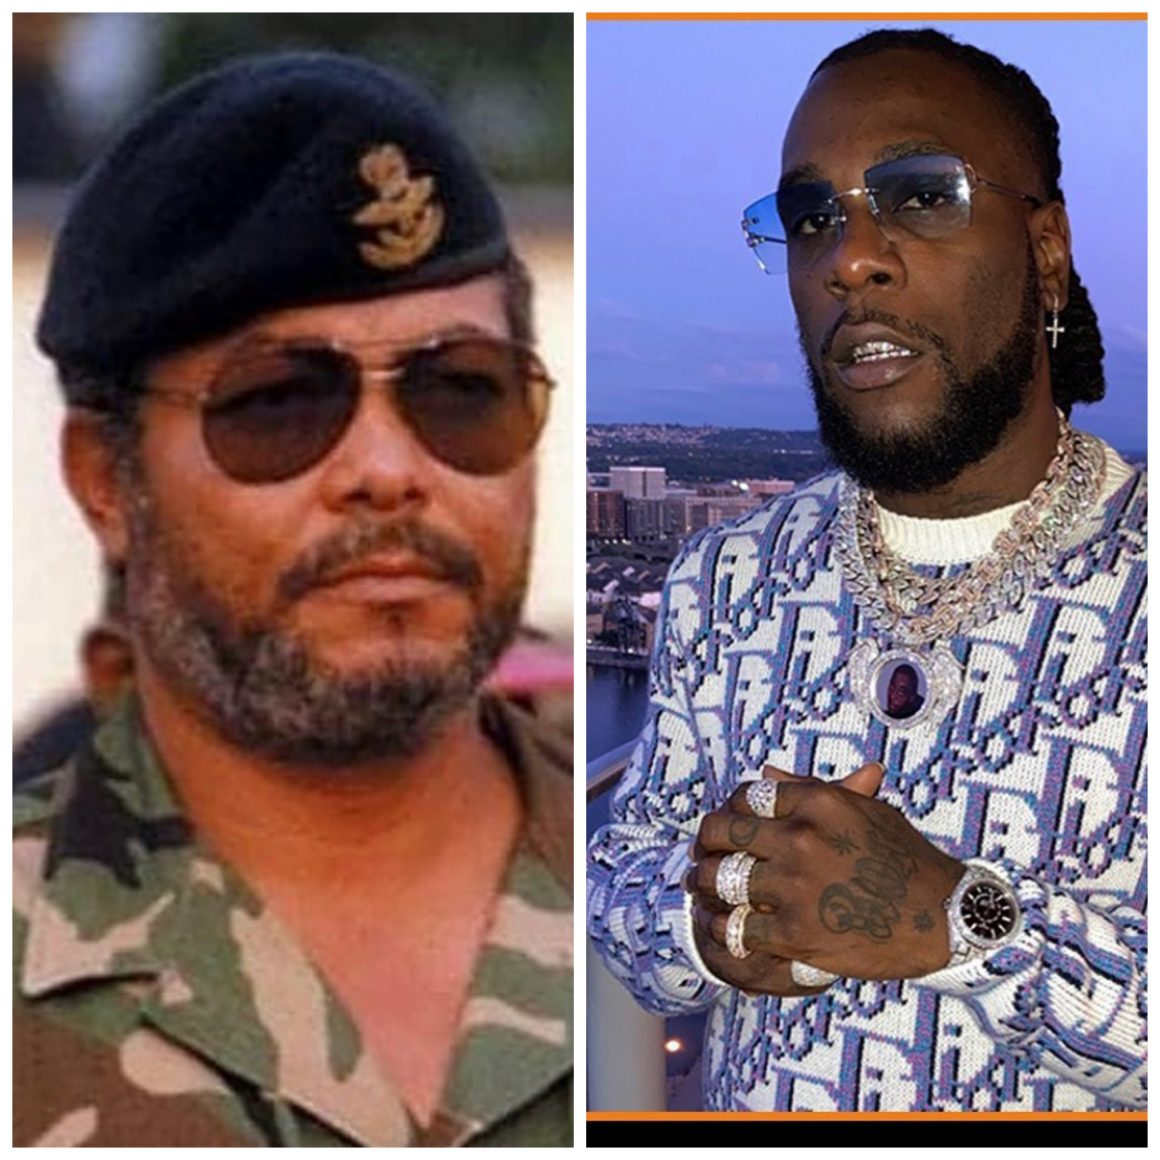 i'm-so-devastated-that-i-didn't-get-the-opportunity-to-meet-you-in-person-burna-boy-mourns-jj.-rawlings